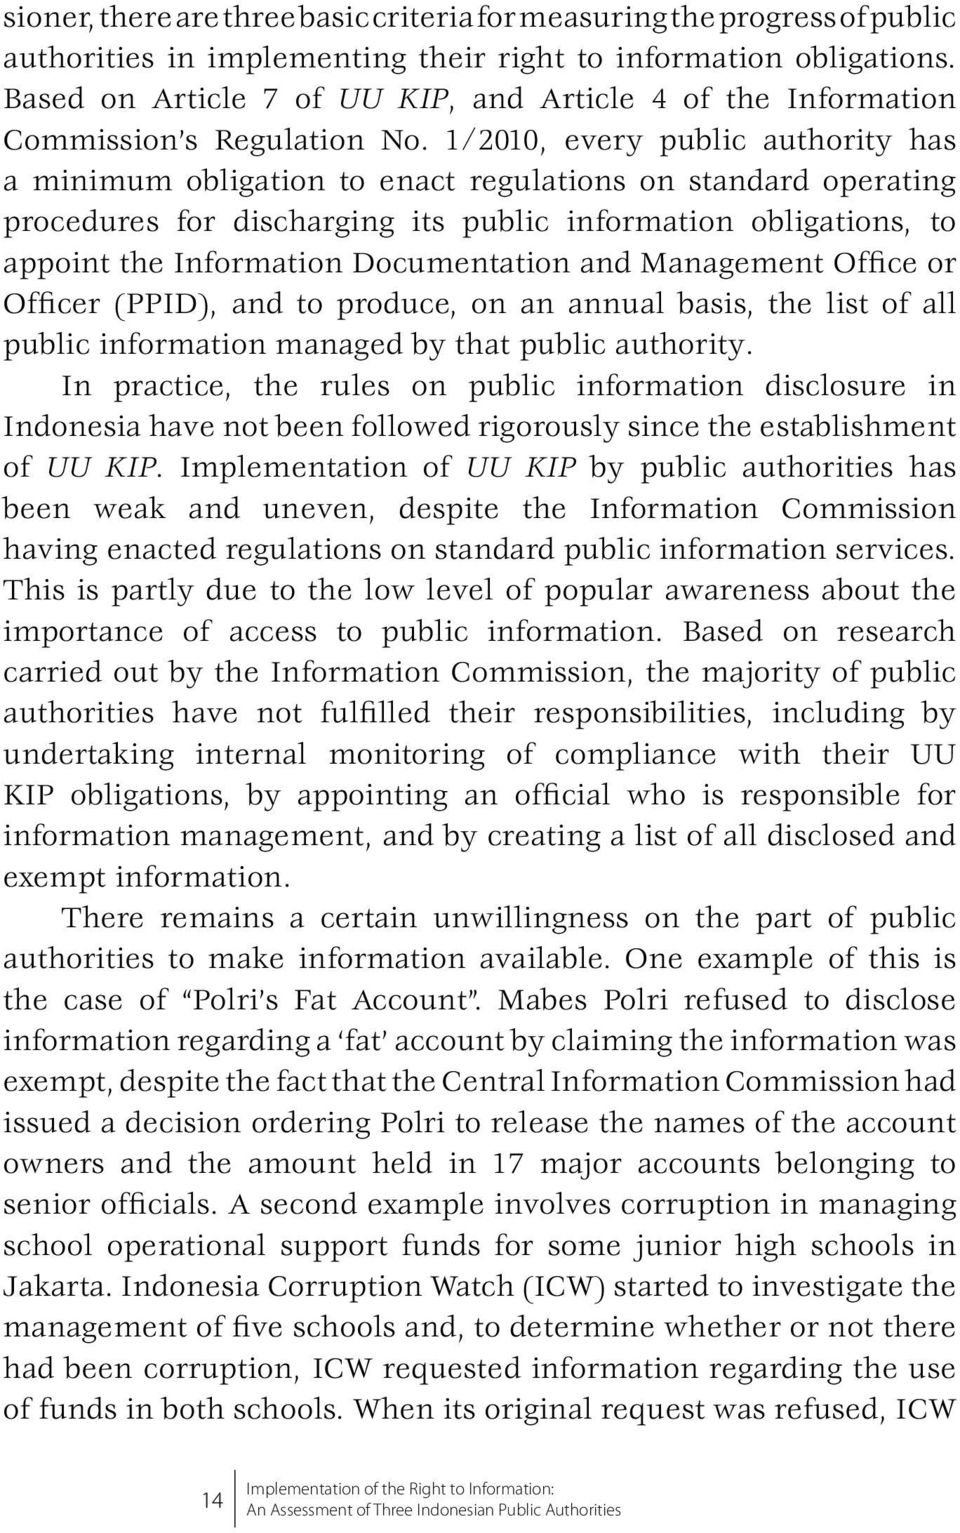 1/2010, every public authority has a minimum obligation to enact regulations on standard operating procedures for discharging its public information obligations, to appoint the Information